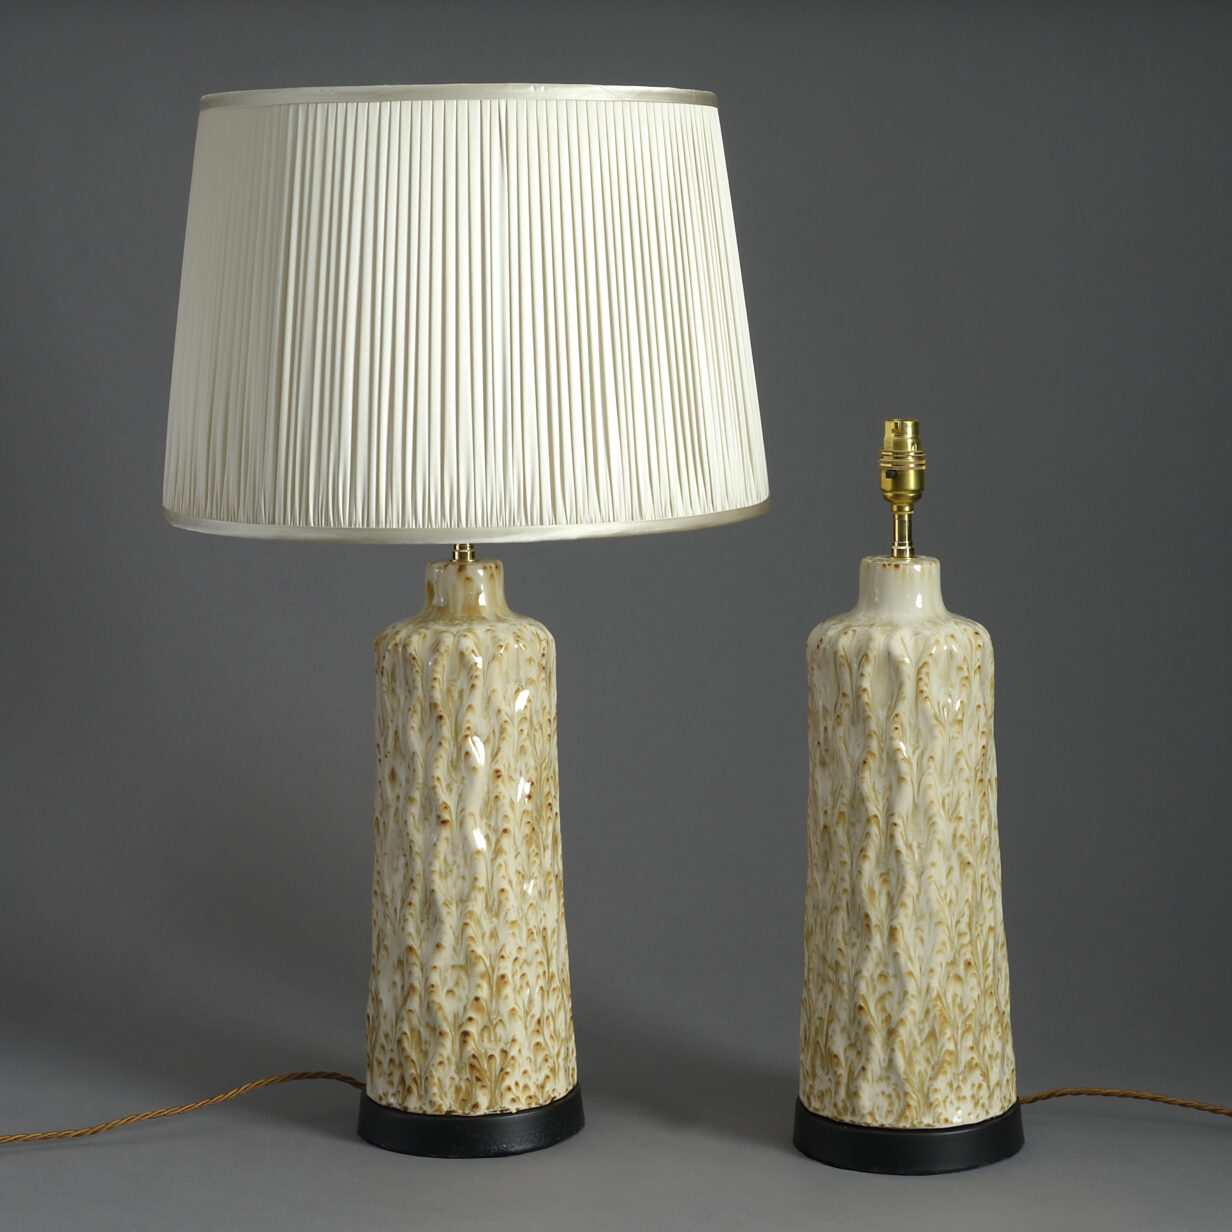 Pair of Mid-century Pottery Lamps